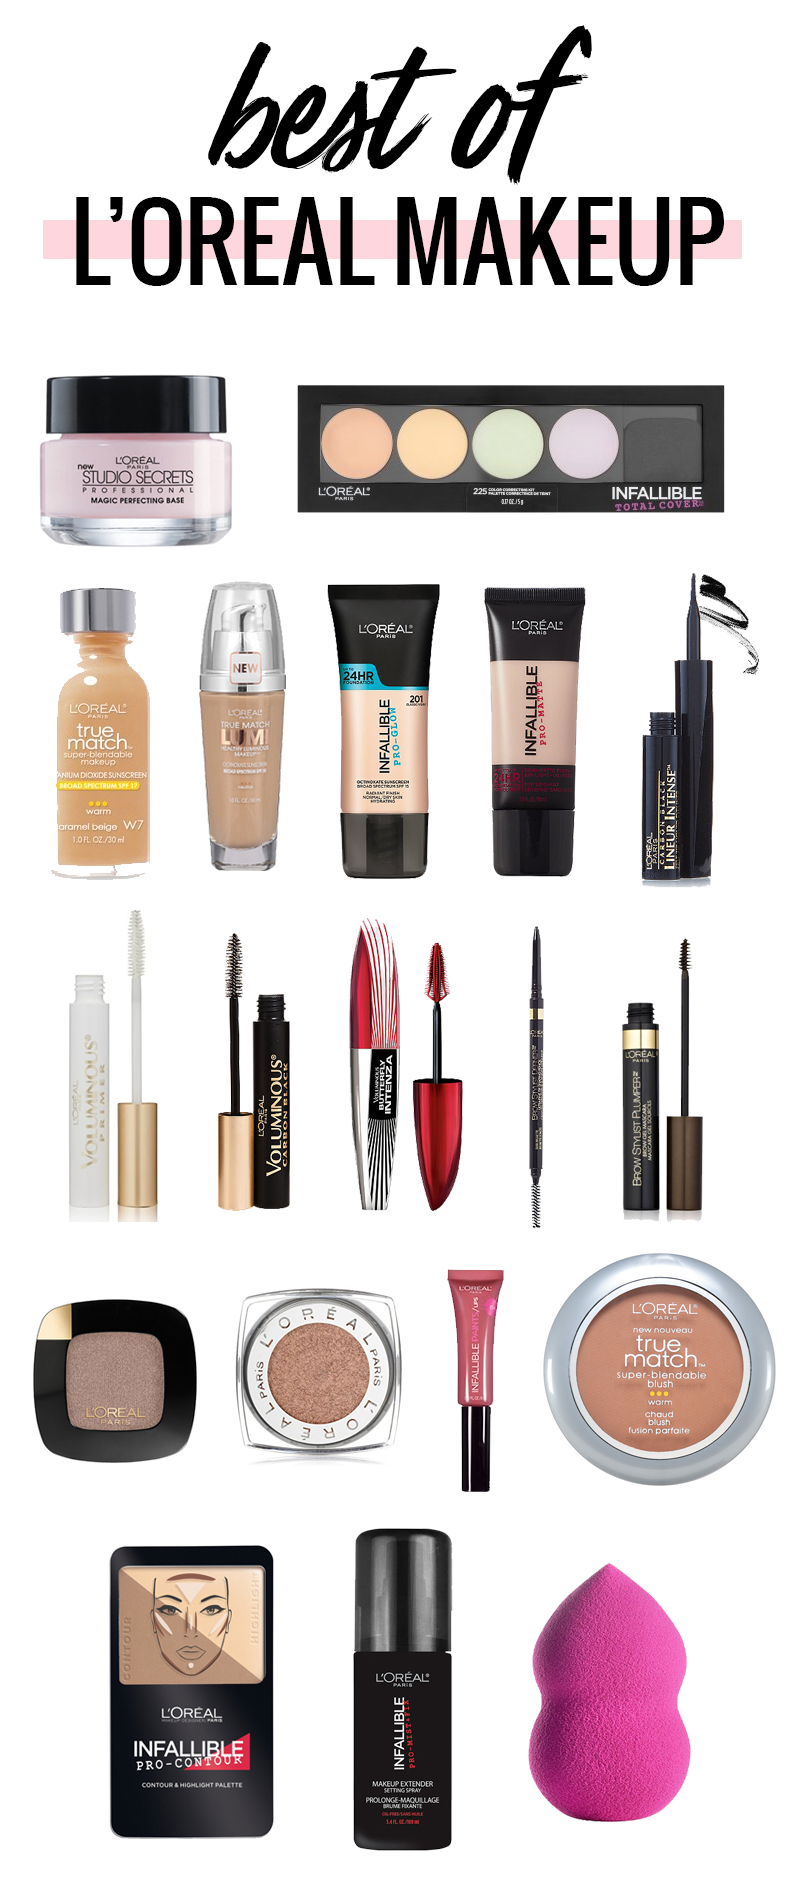 The best of L'Oreal Makeup